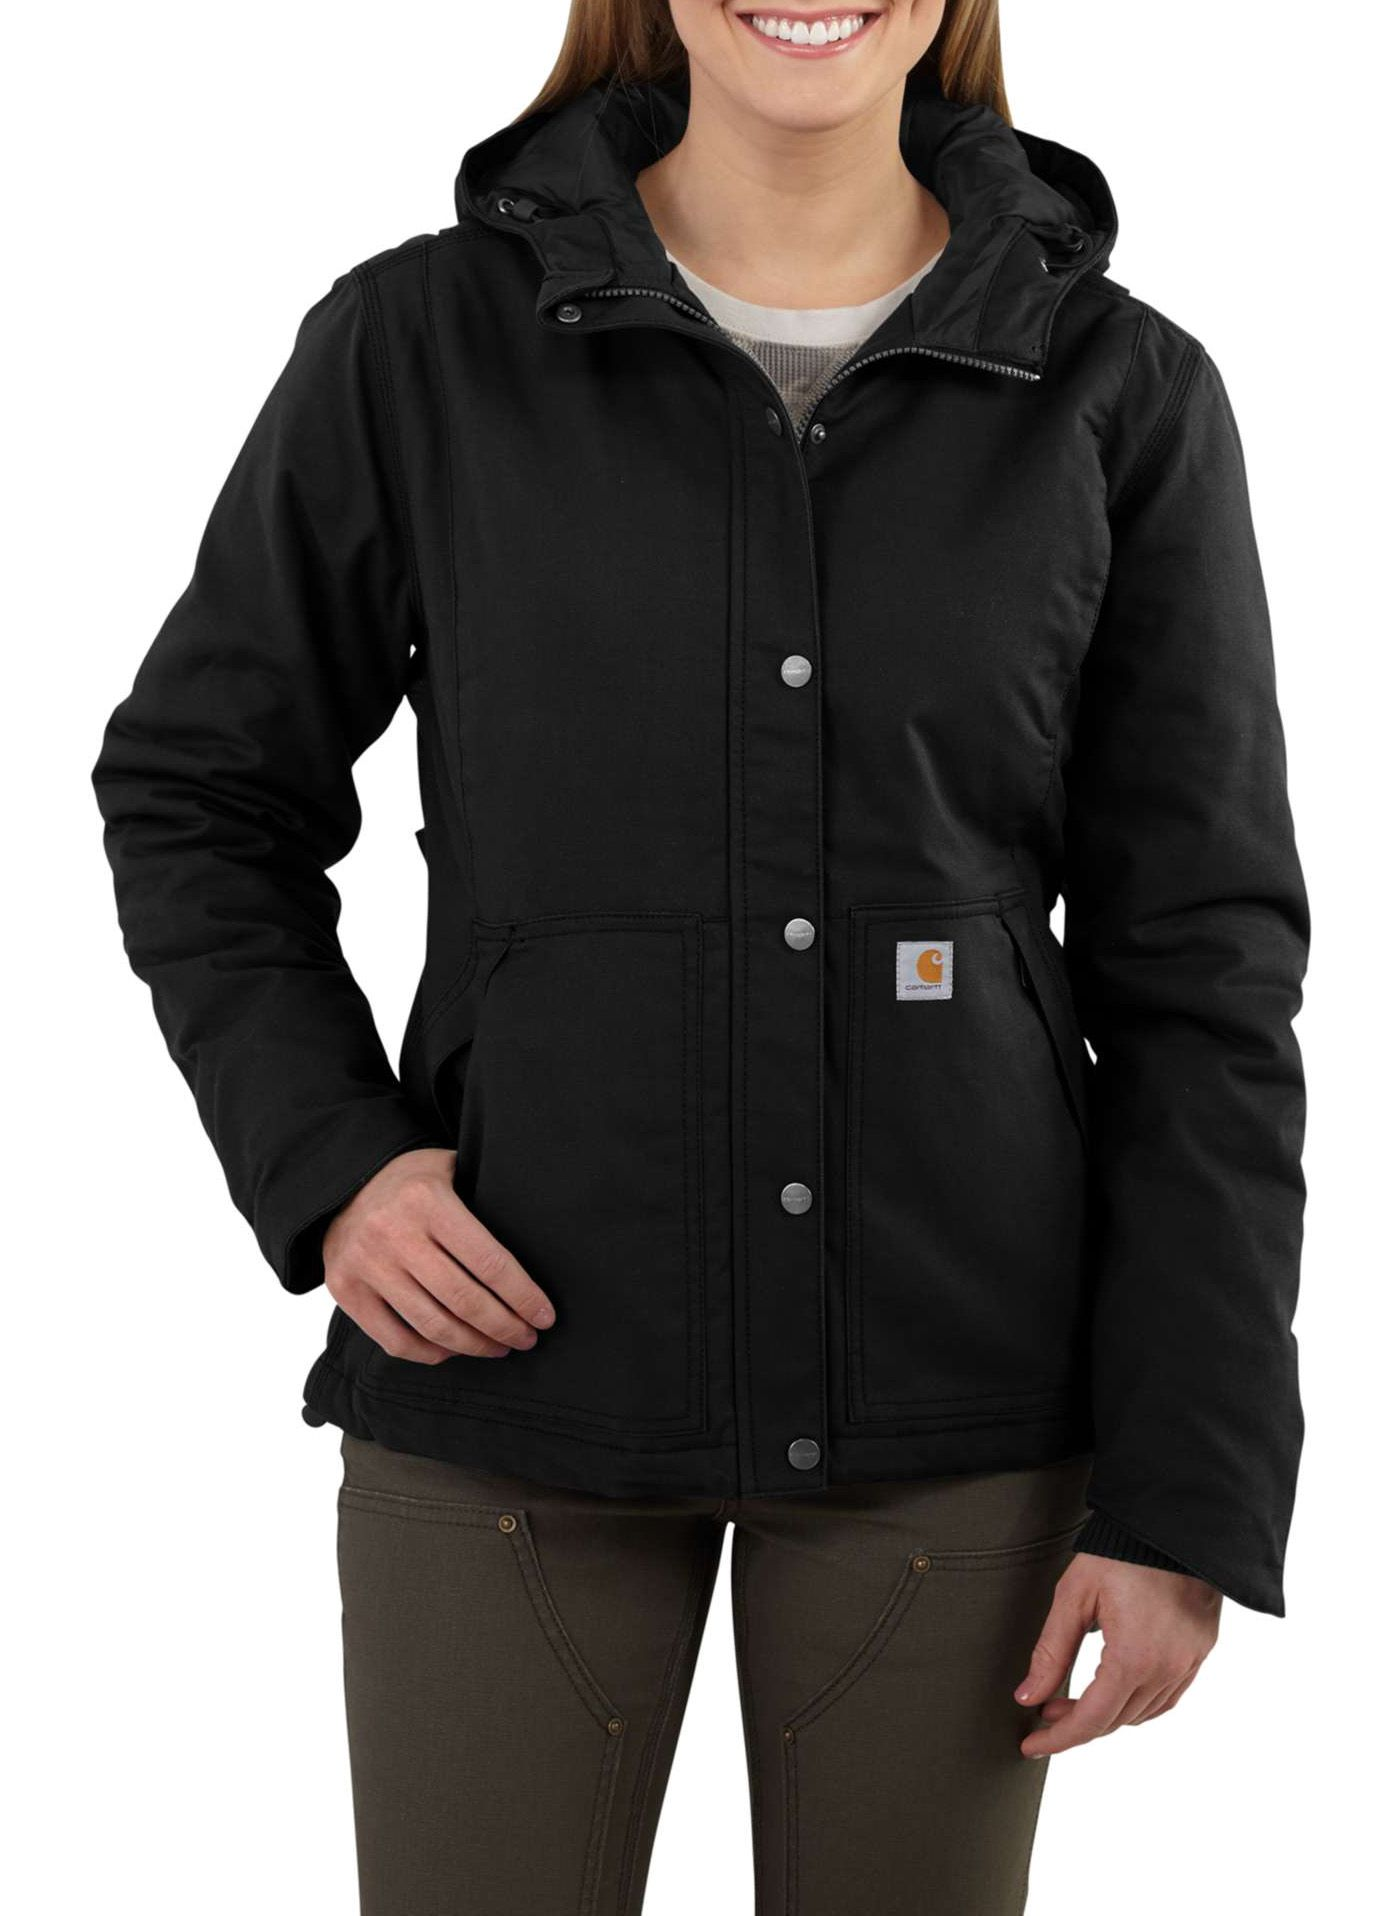 Carhartt Women's Full Swing Cryder Stretch Jacket